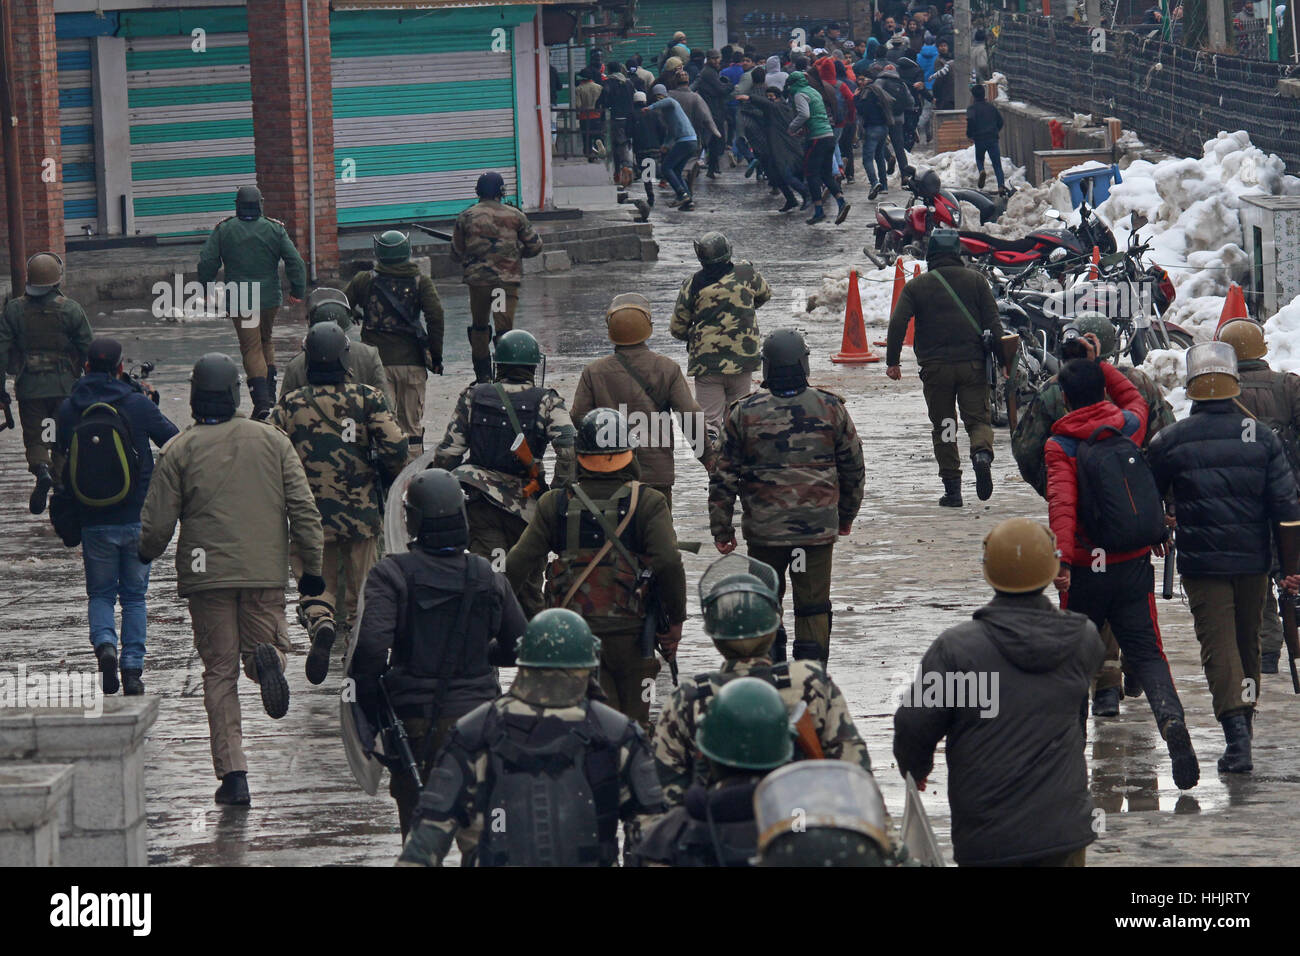 Srinagar, Kashmir. 20th Jan, 2017. Kashmiri Muslim protestors run for cover as they are chased by government forces - Stock Image